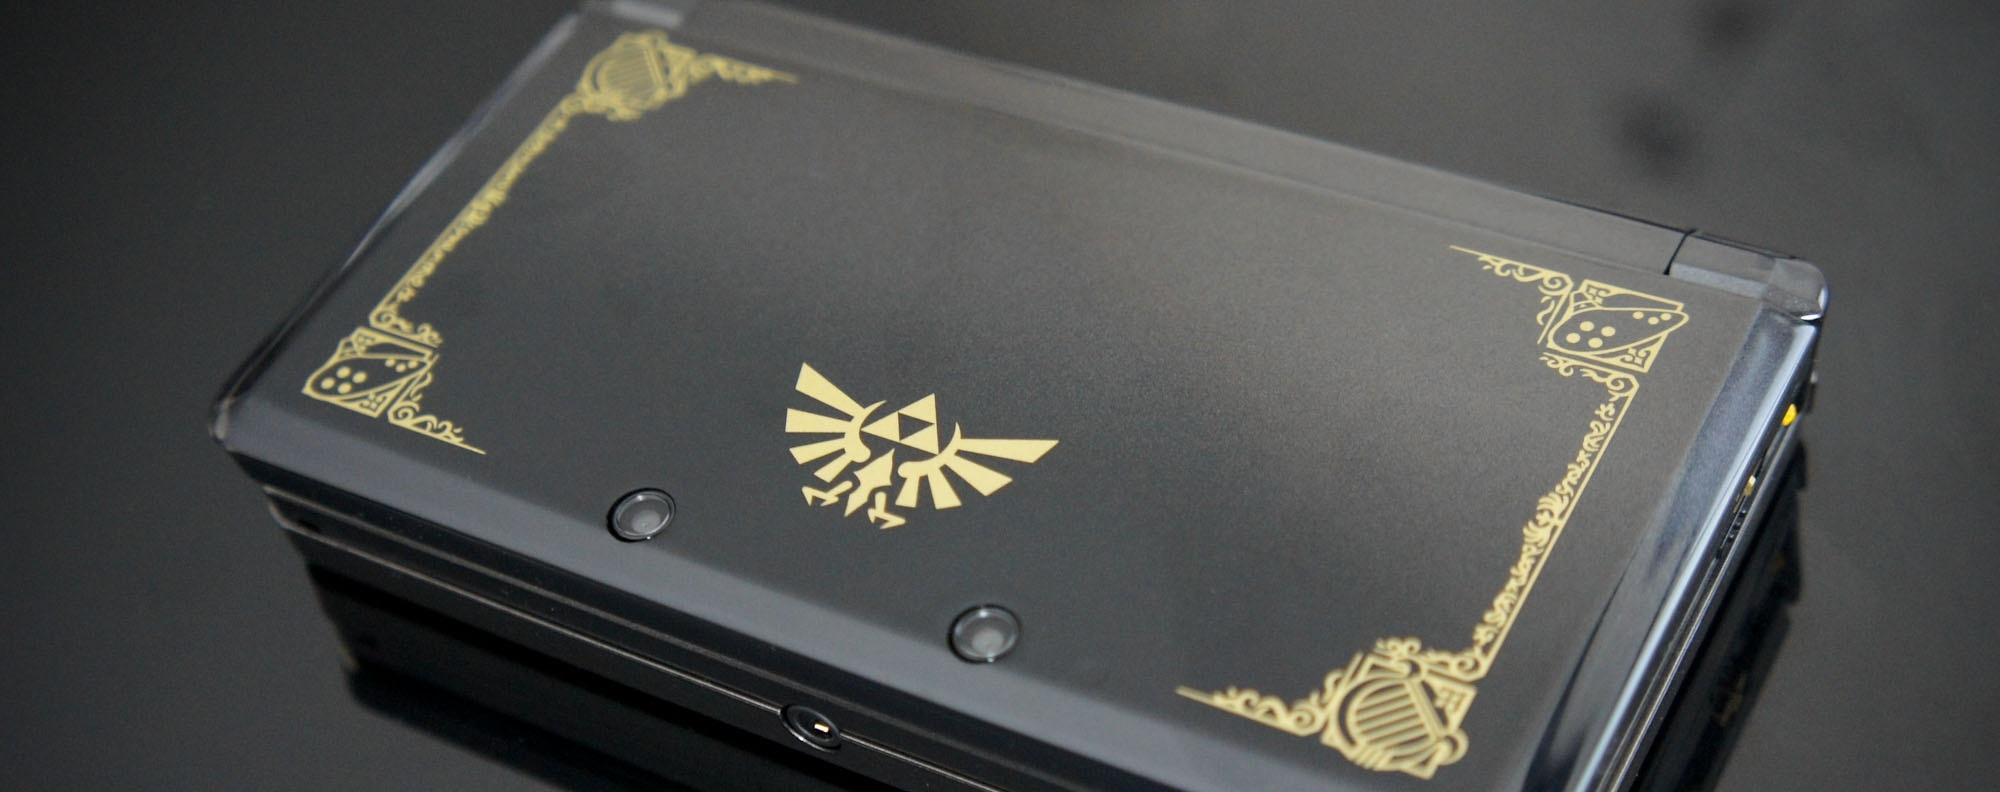 http://consolefun.fr/upload/images/151890387225-ans-zelda-3ds-collector.jpg